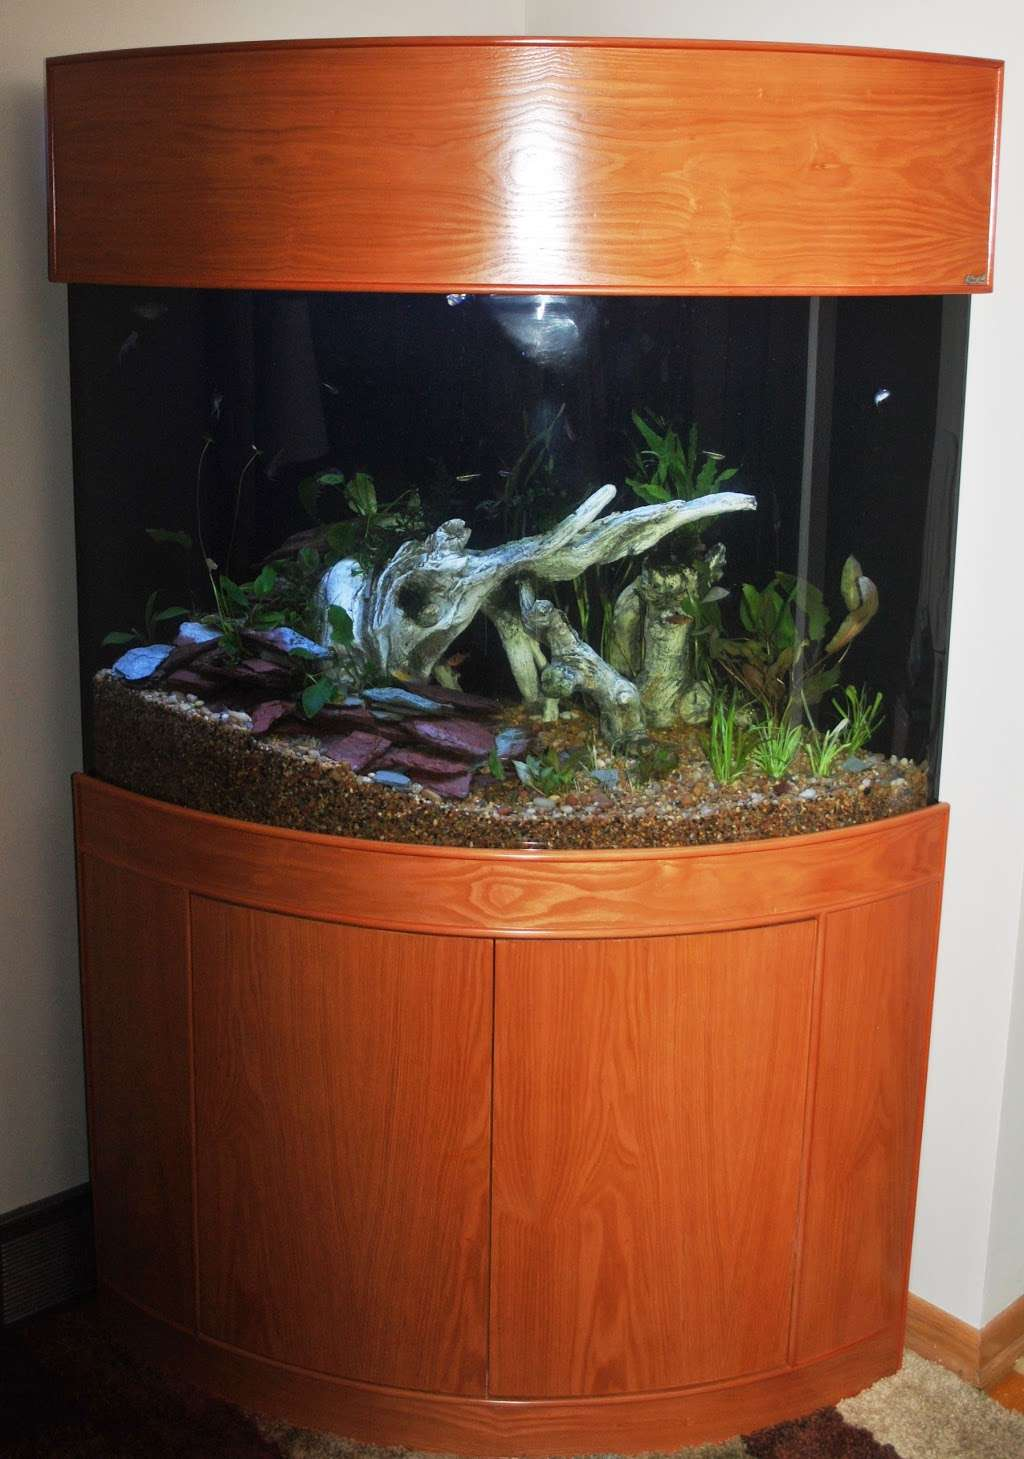 Aqua Vim - aquarium  | Photo 2 of 5 | Address: 5408 46th St, Flushing, NY 11378, USA | Phone: (718) 433-2698